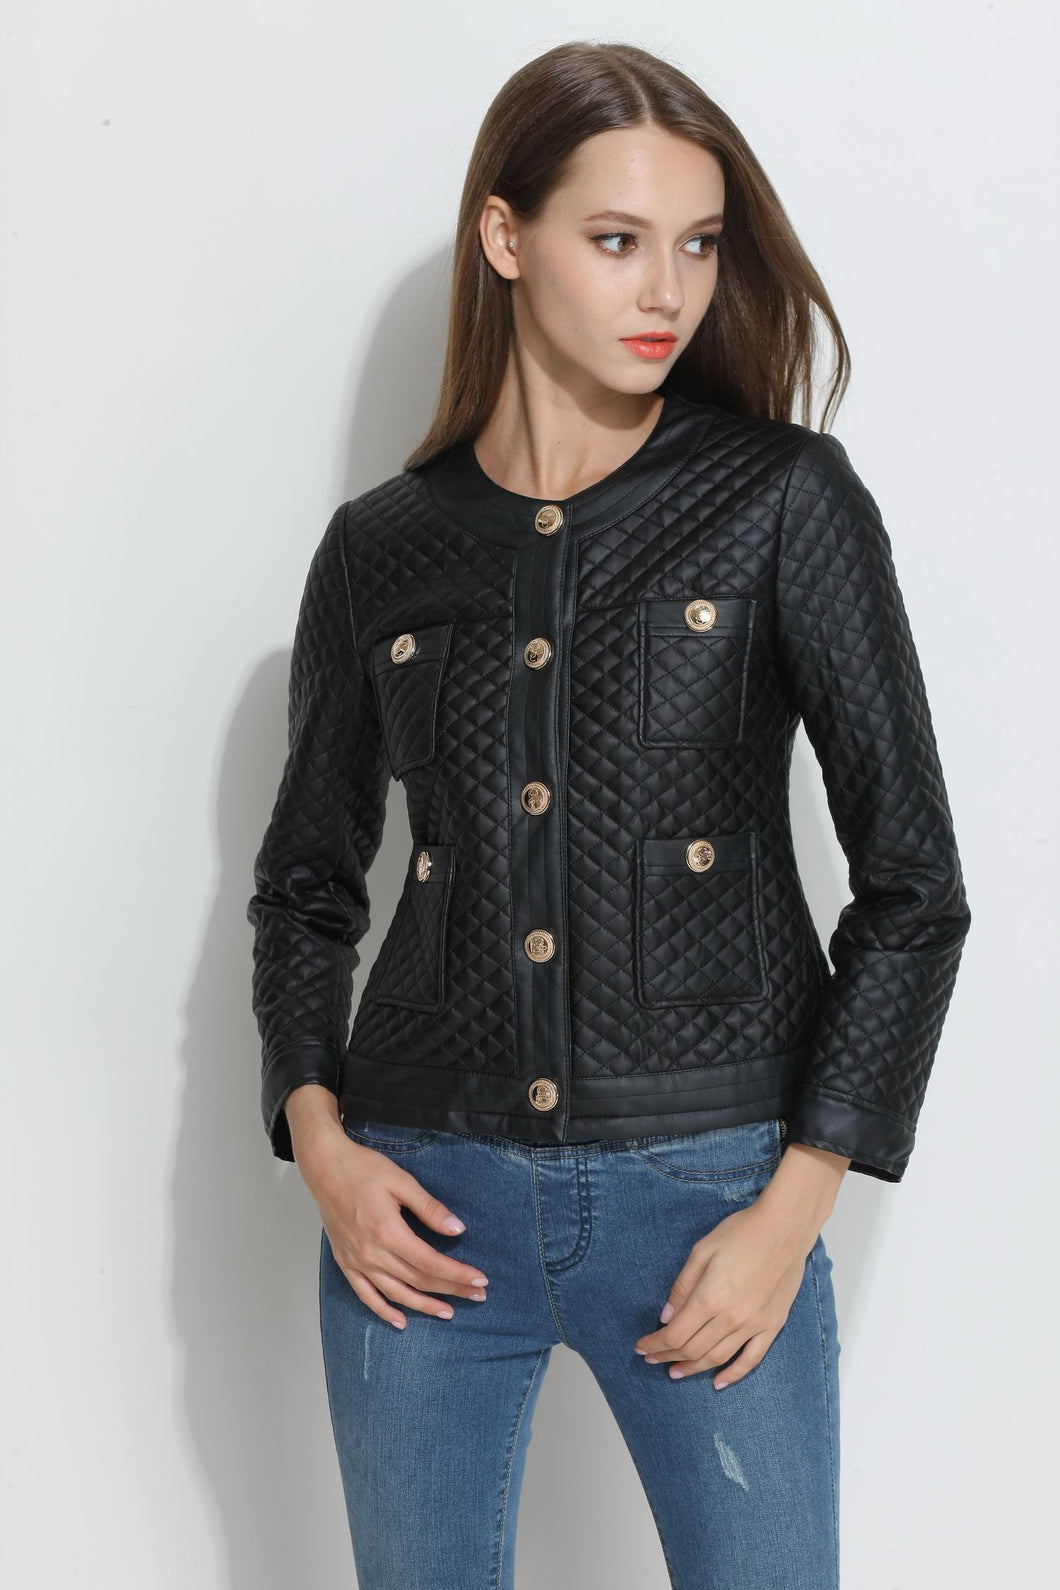 Comino Couture Black PU Quilted Leather Jacket *WAS £145